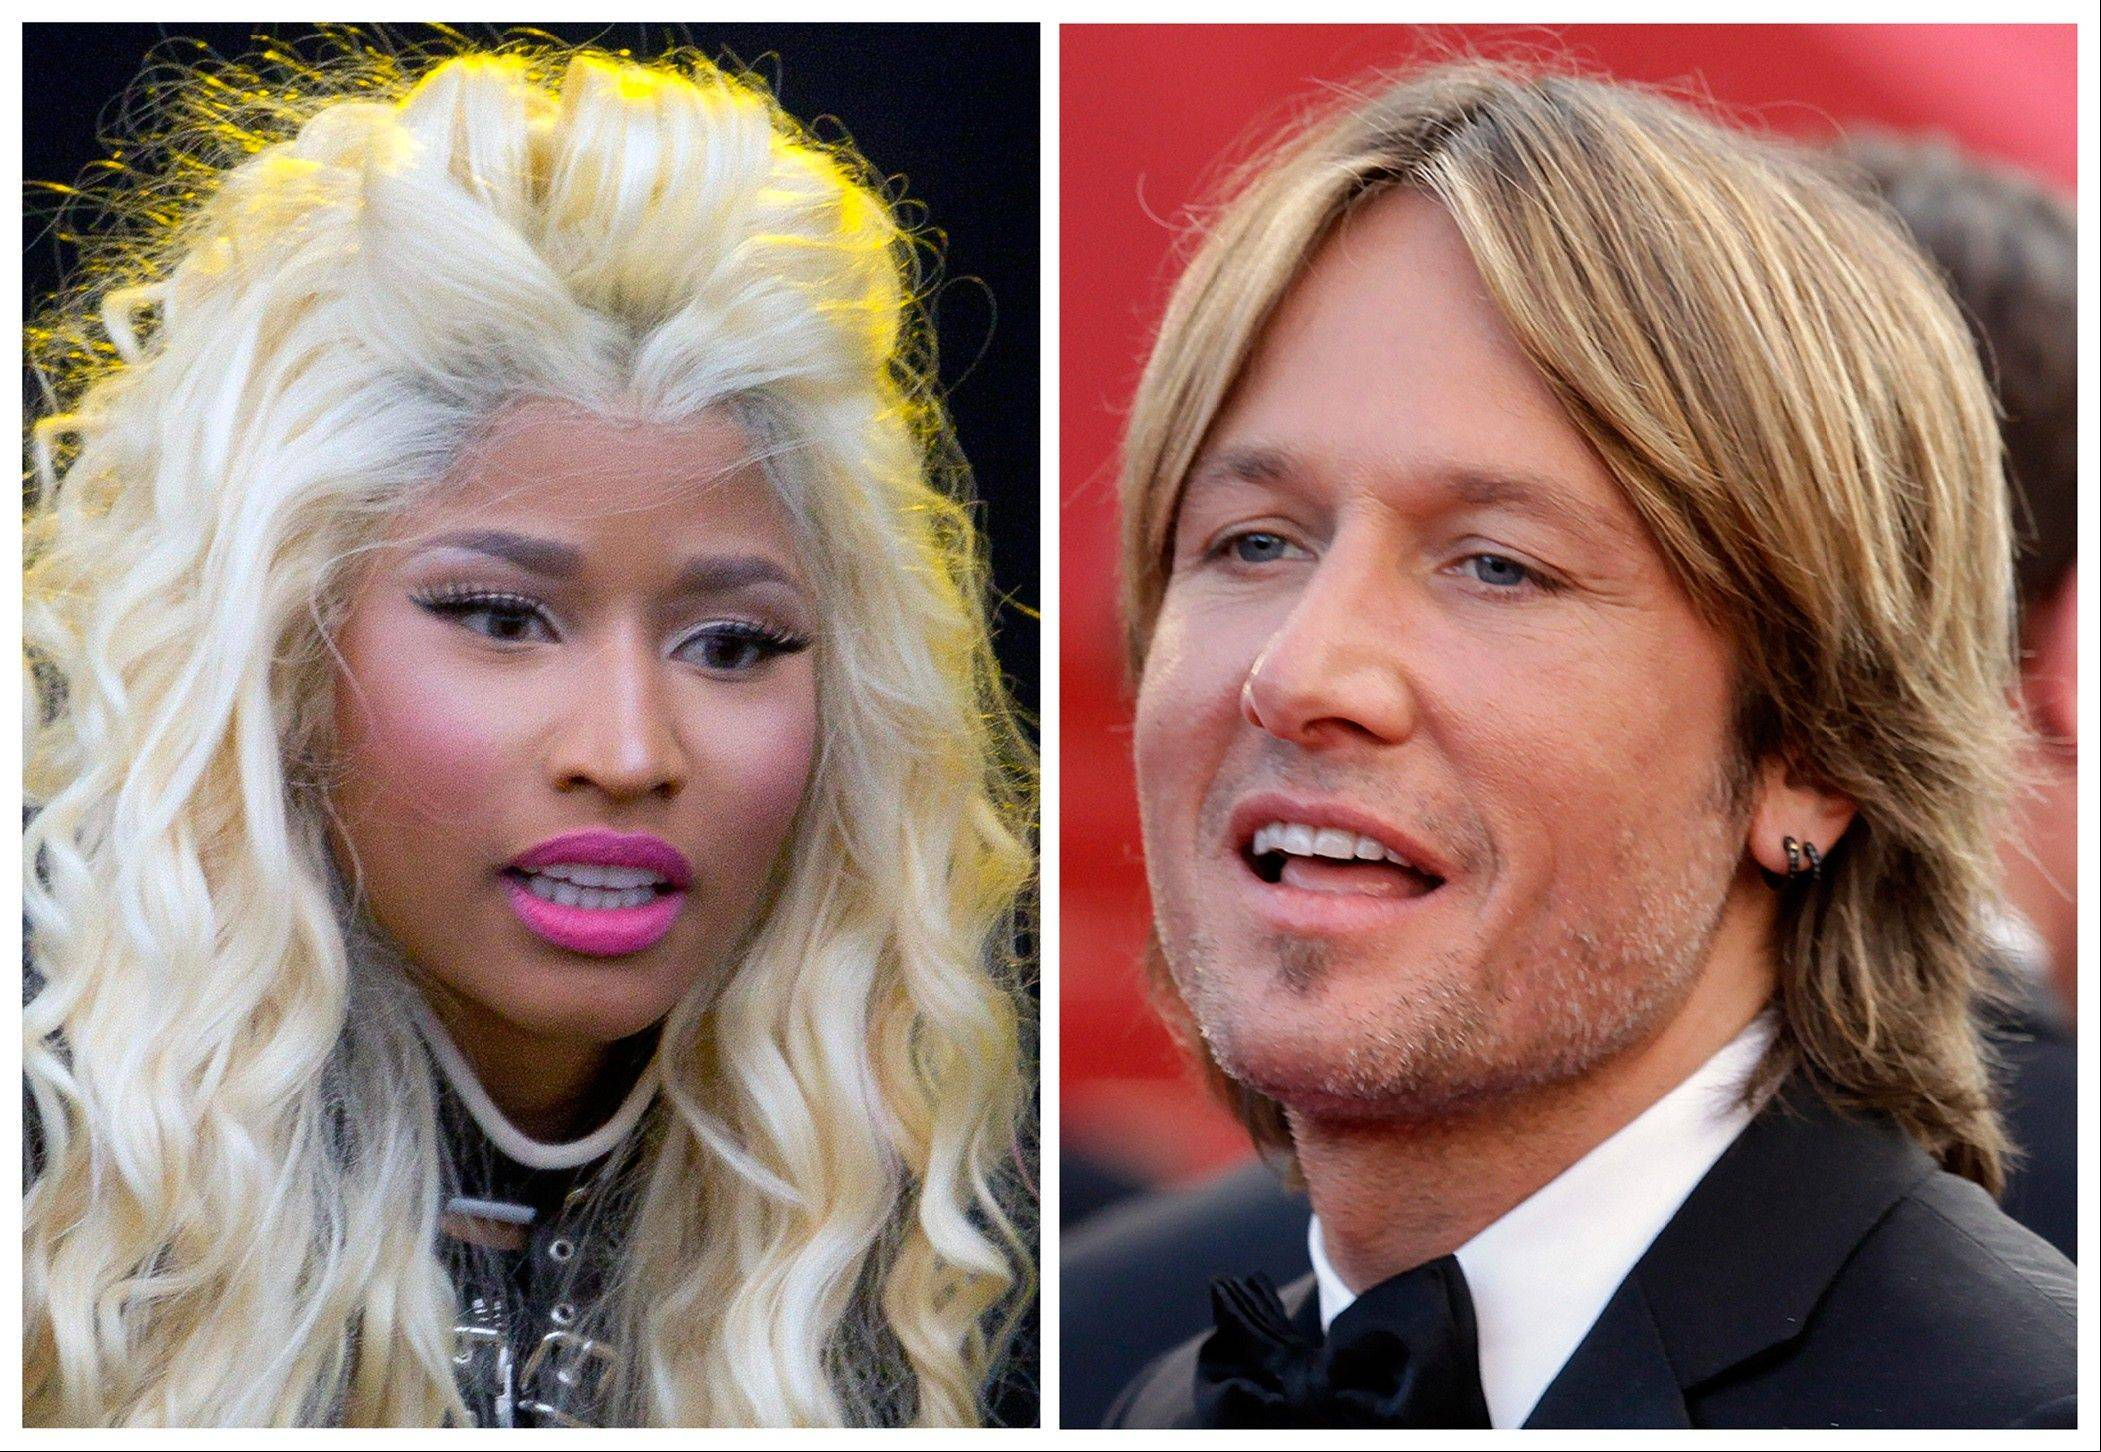 This photo combination shows musicians Nicki Minaj, left, and Keith Urban. The �American Idol� judges� panel is now complete with the naming of singer-rapper Minaj and country crooner Urban. The Fox network officially tapped the pair with an announcement Sunday just hours before the first round of judging for next season was due to begin in New York. Minaj and Urban will join singer Mariah Carey and longtime �Idol� judge Randy Jackson at the judges� table for the show�s 12th season.